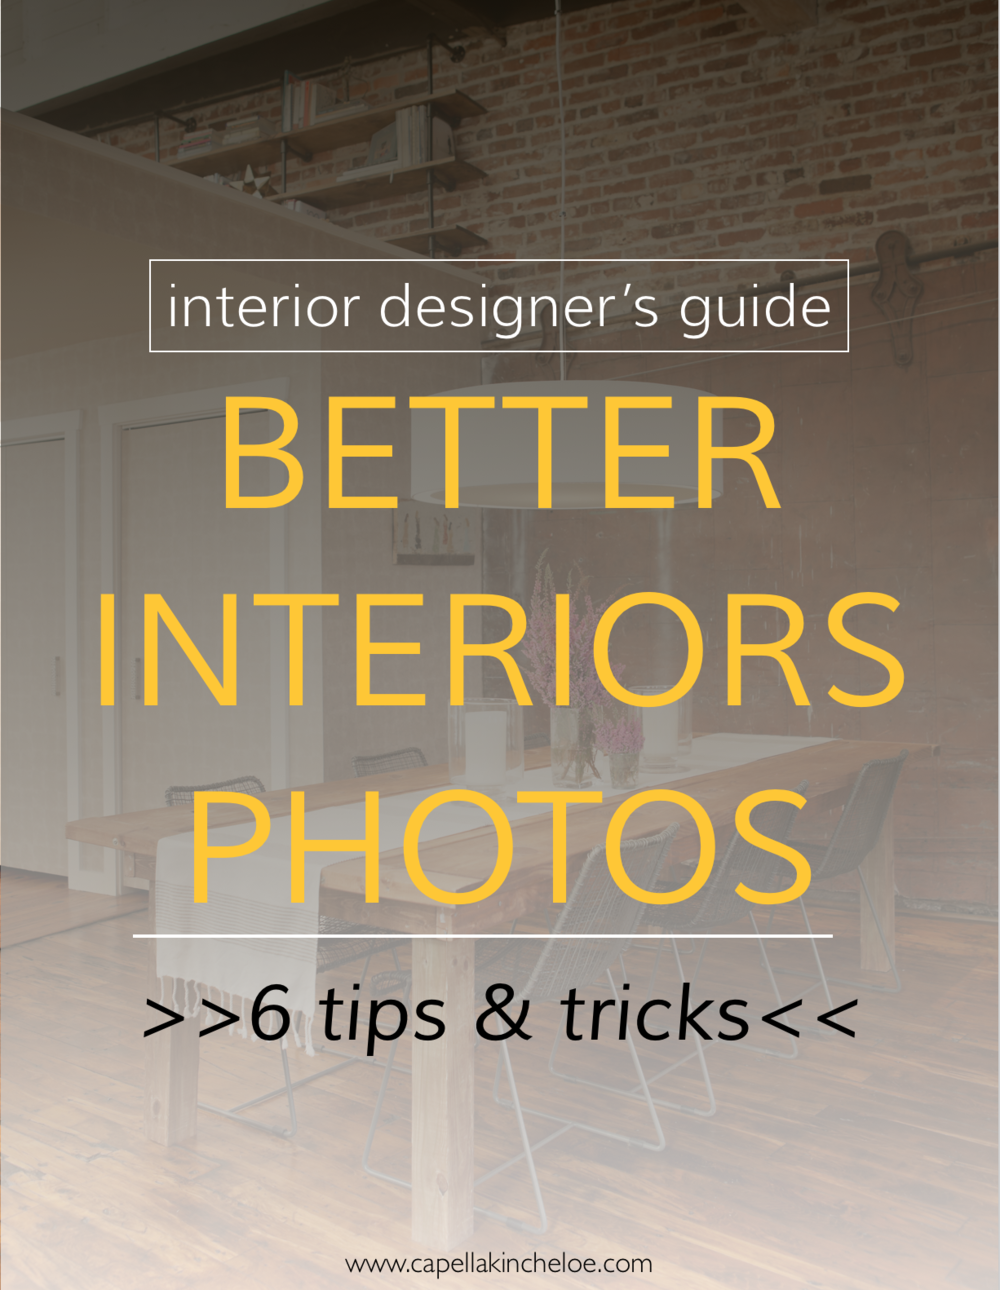 We all want our interior design projects to look the best they can.  Here are six tips and tricks to the best interior design photos.